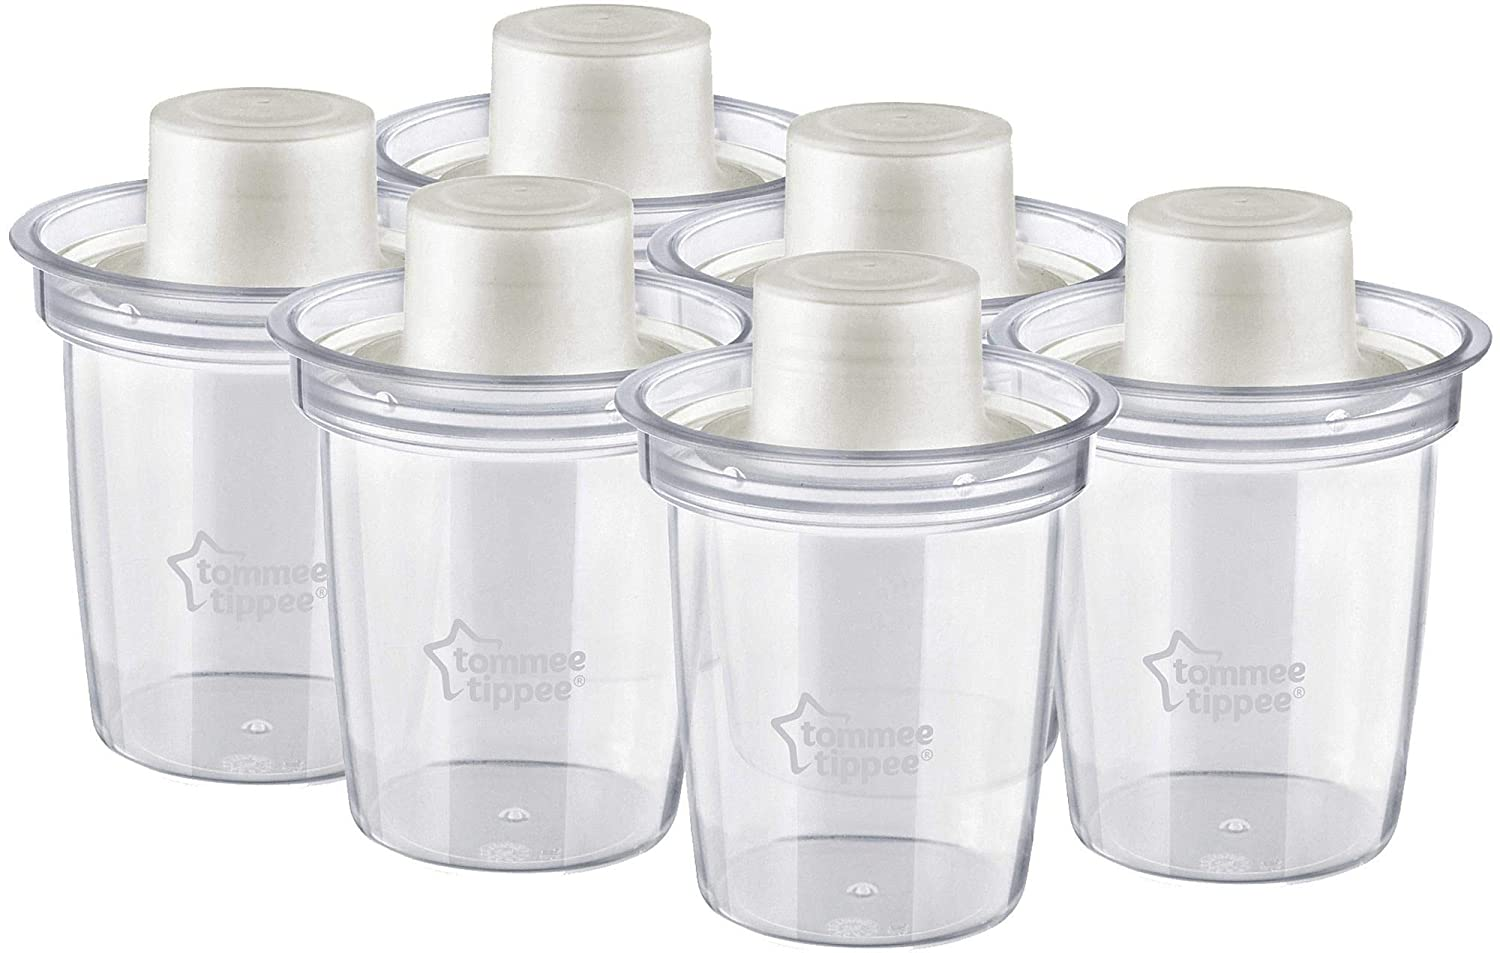 Lot of 6 milk dispensers - Tommee Tippee